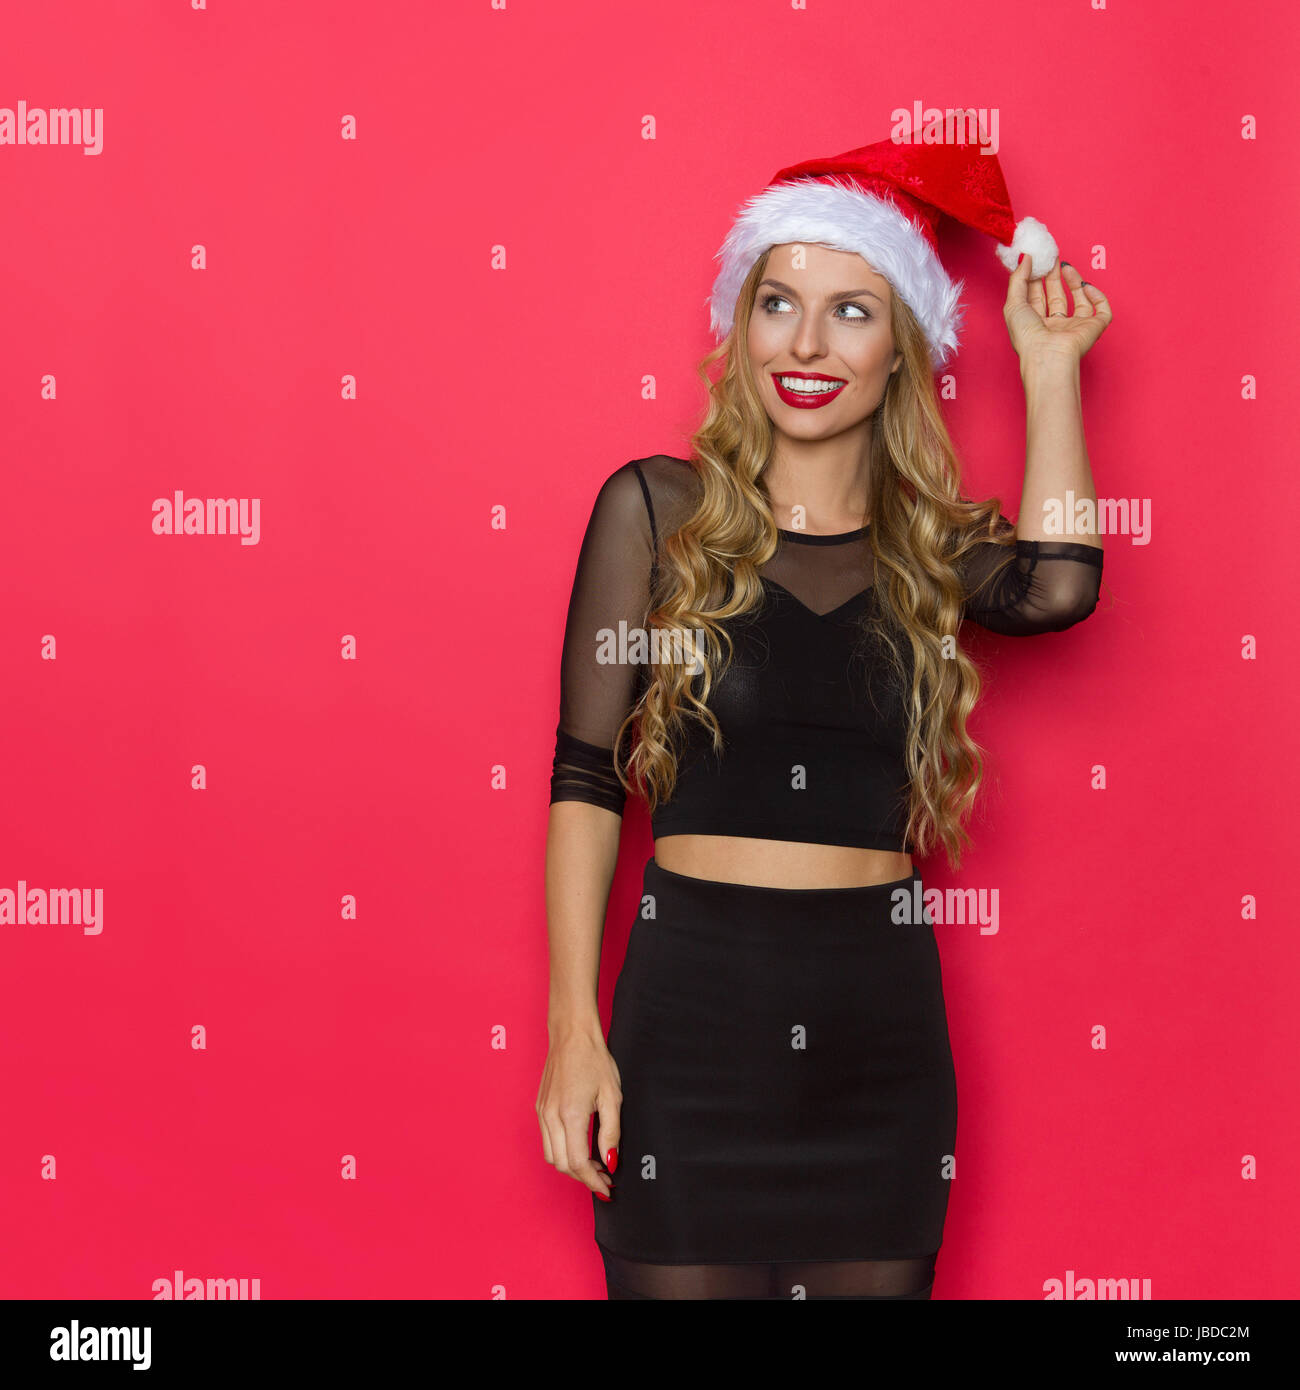 Smiling young blond woman in santa hat and black dress watching. Three quarter length studio shot on red background. Stock Photo